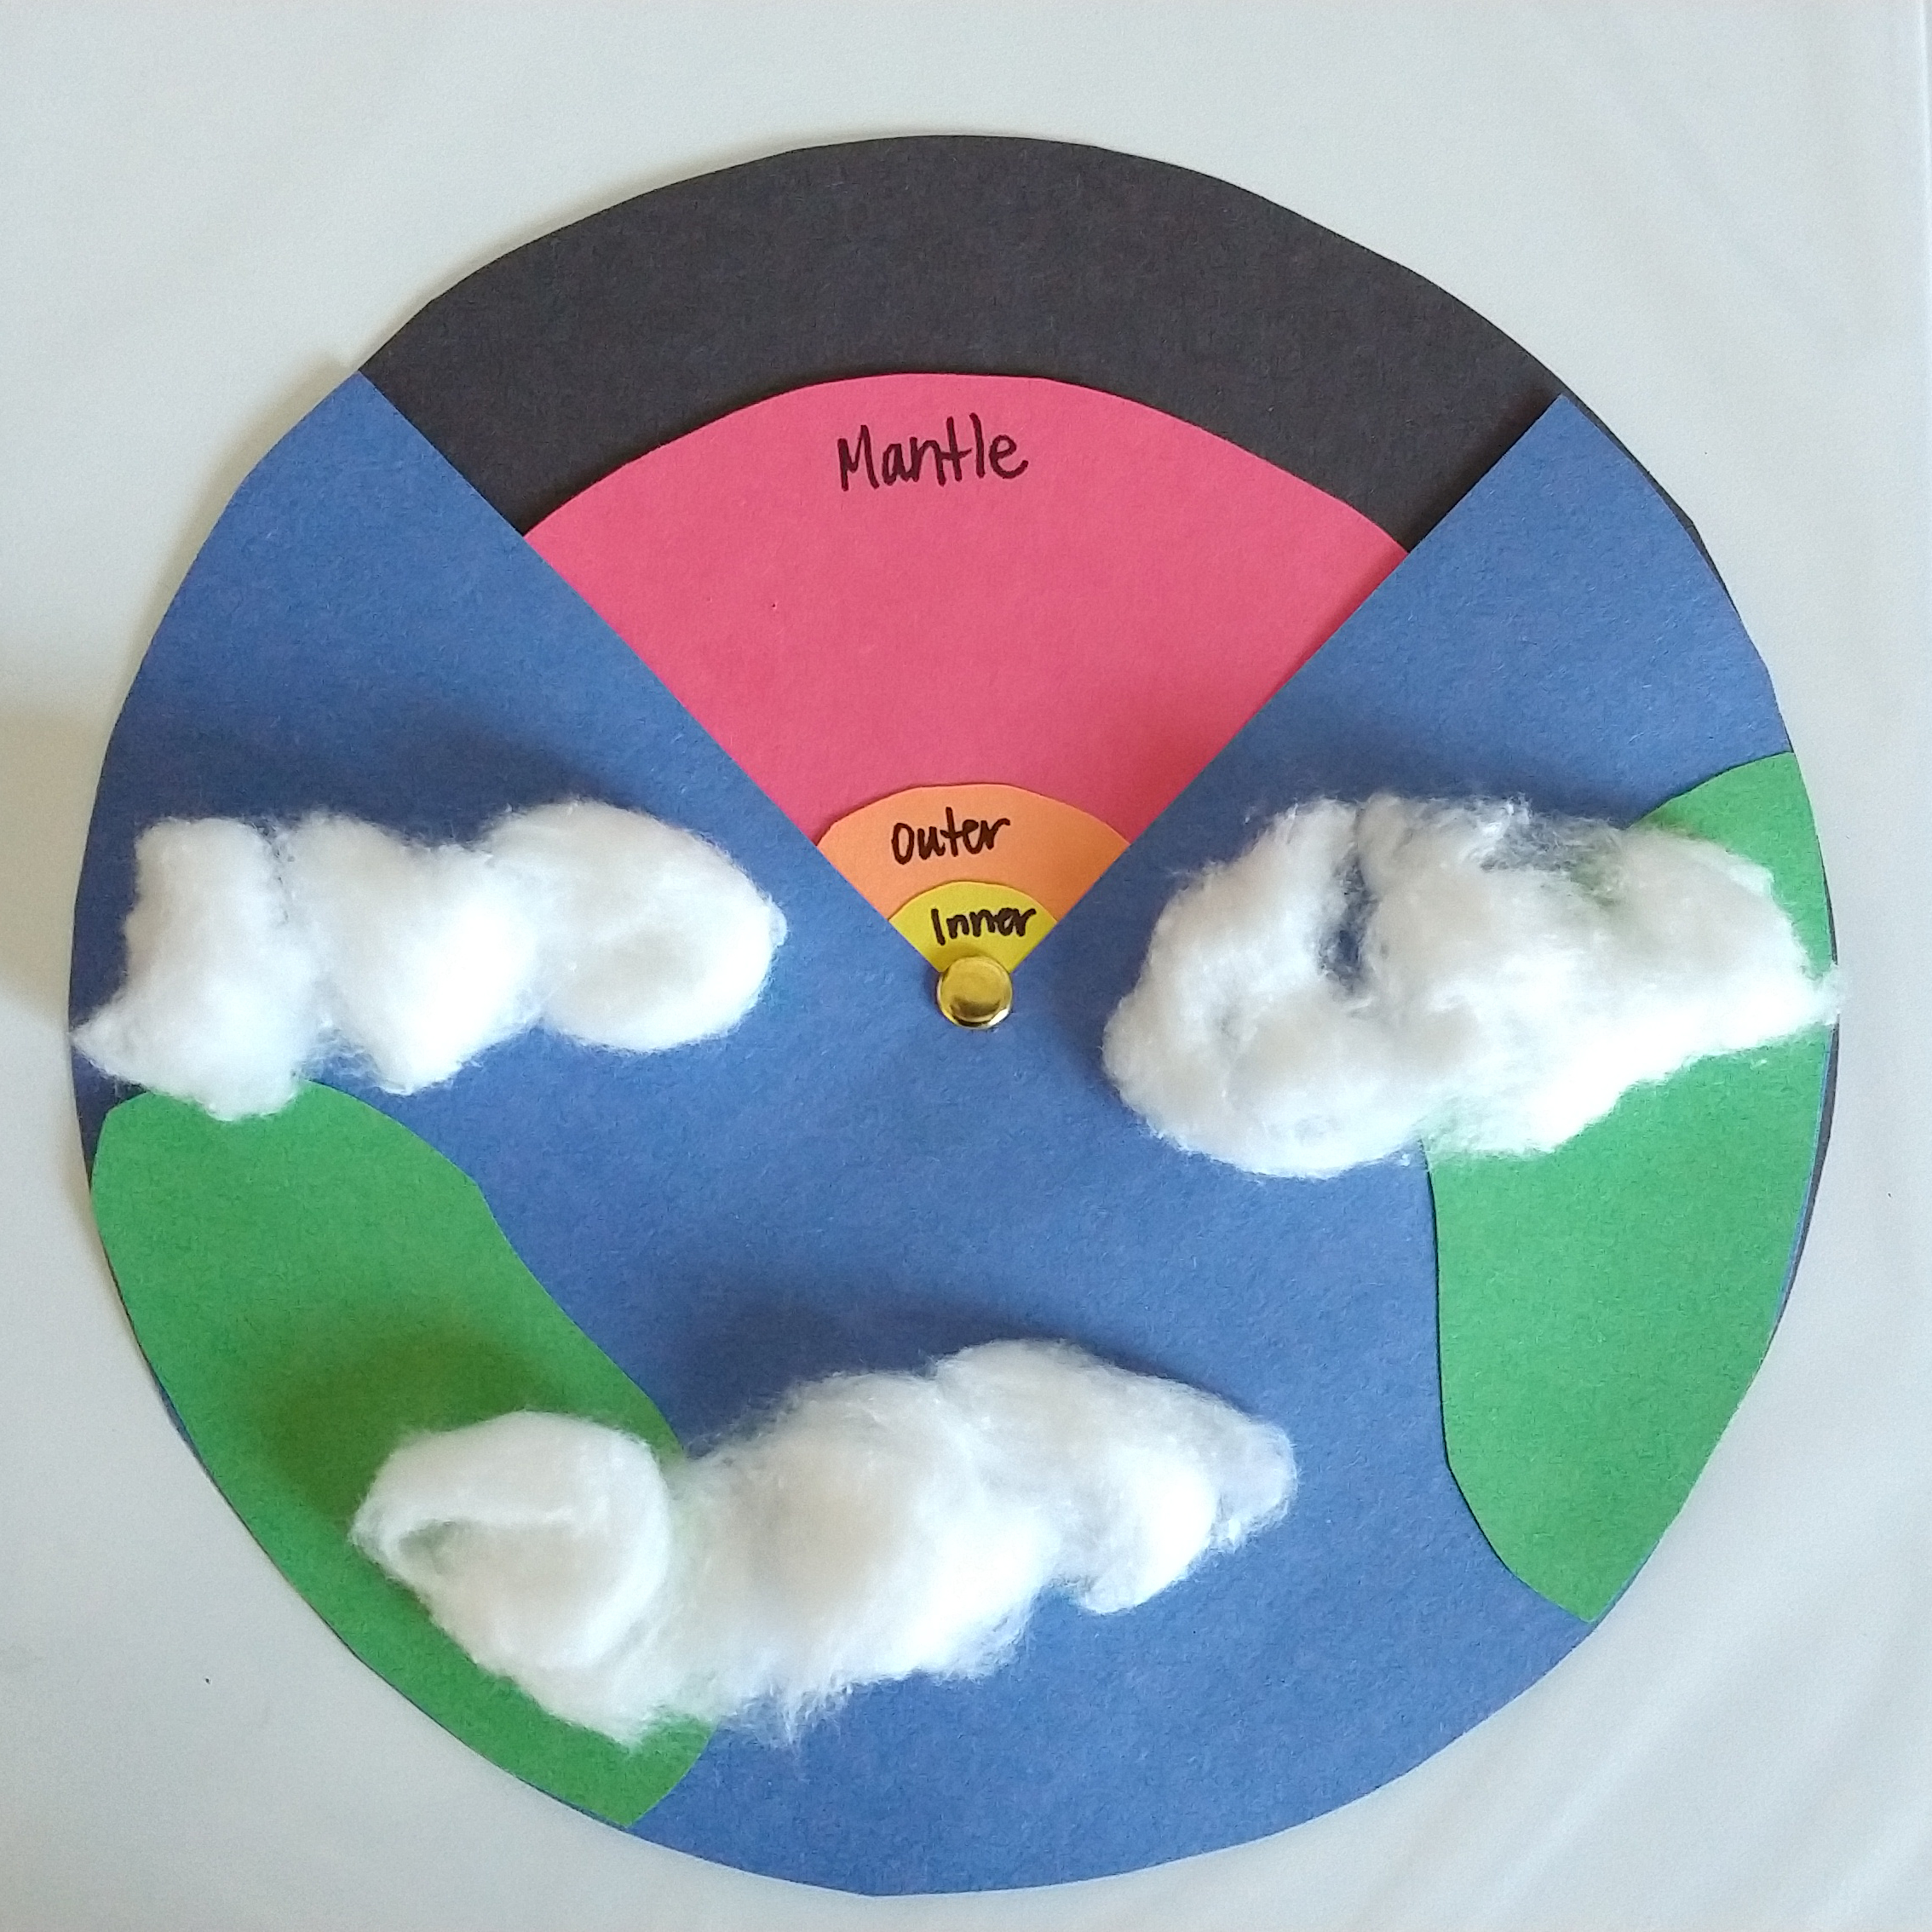 Make a model of the earth's layers with paper, scissors, markers and a brad.